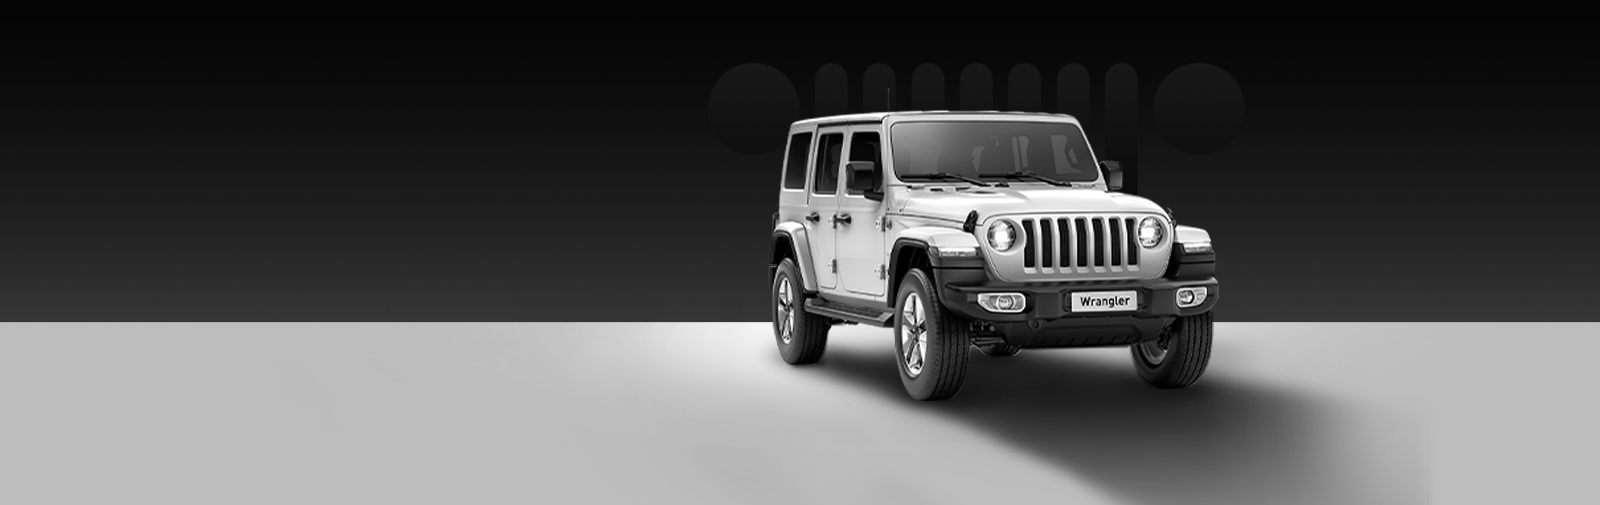 NOUVELLE JEEP® WRANGLER